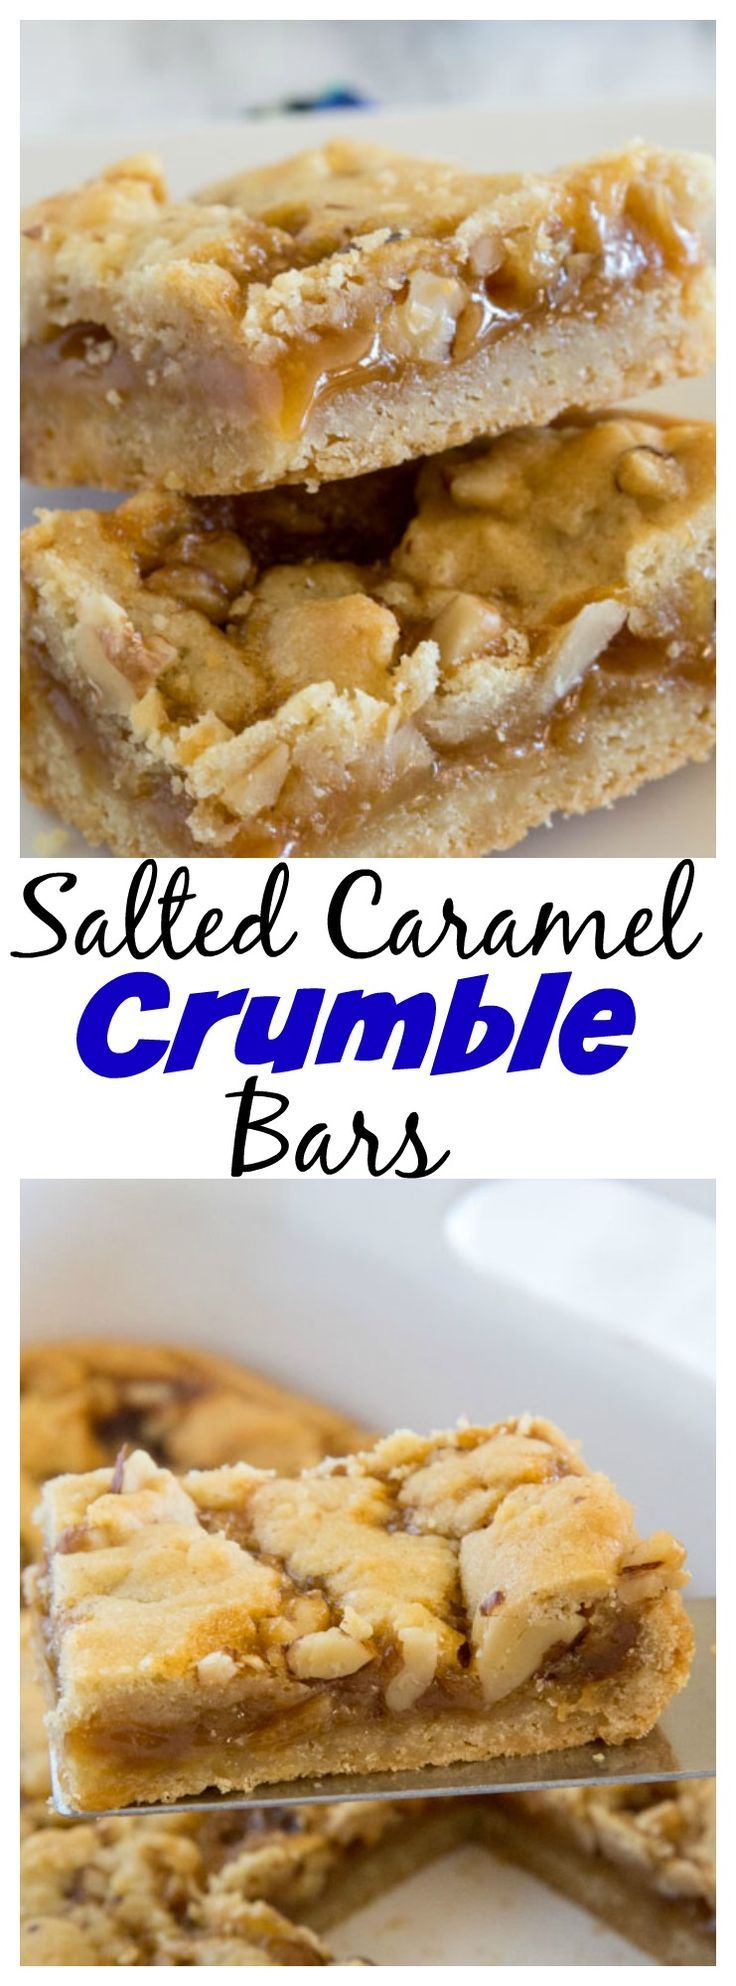 Salted Caramel Crumble Bars – These 5 ingredient bars are buttery, delicious, and so easy to make! You will want to add them to your baking list immediately!